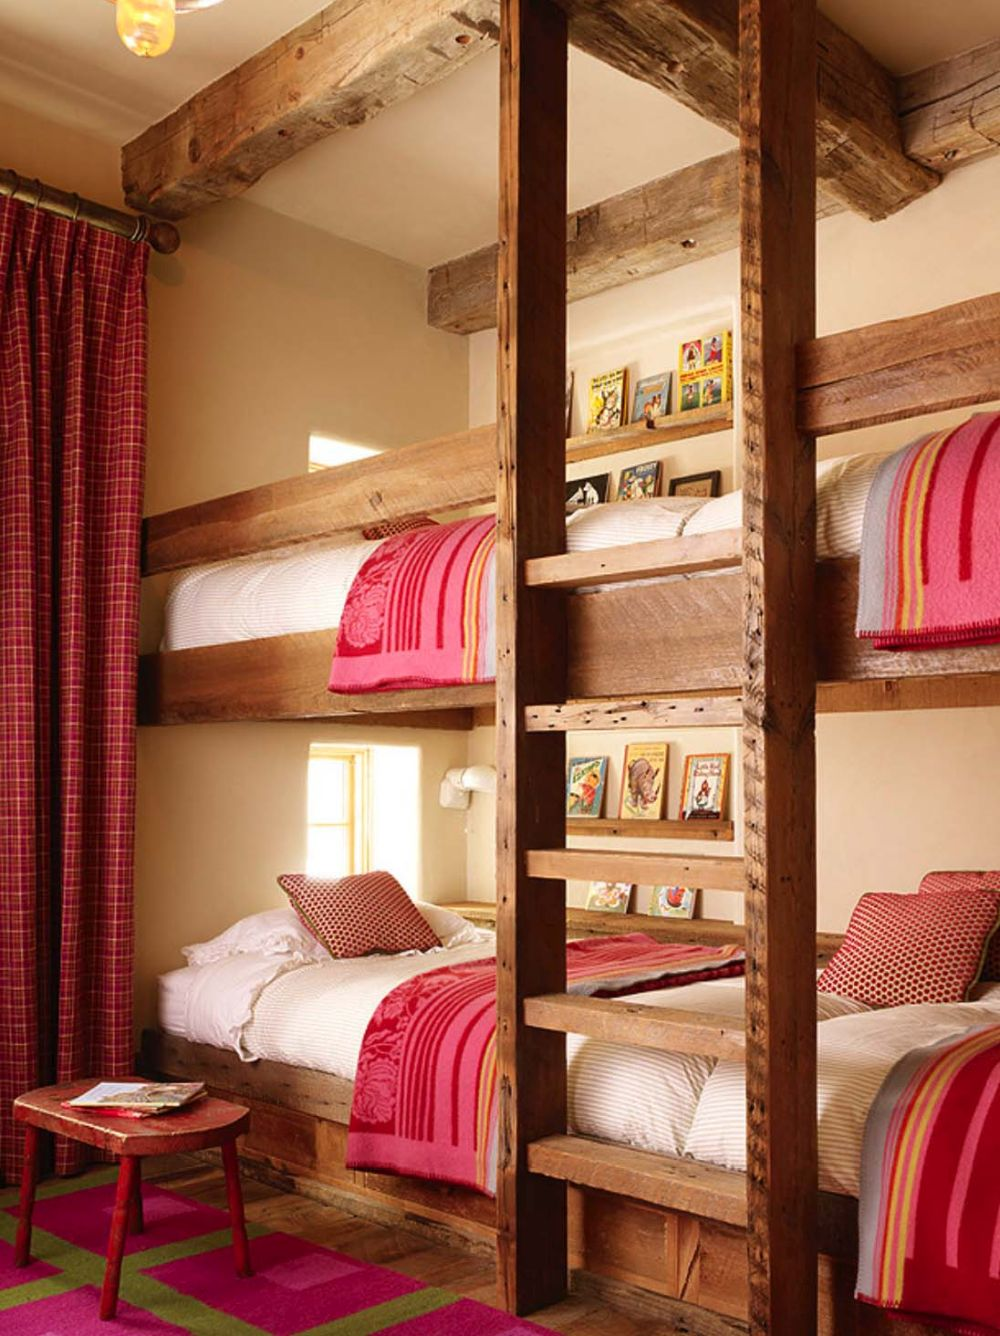 The built-in bunk beds maximize the bedroom's floor space and give it a playful feel